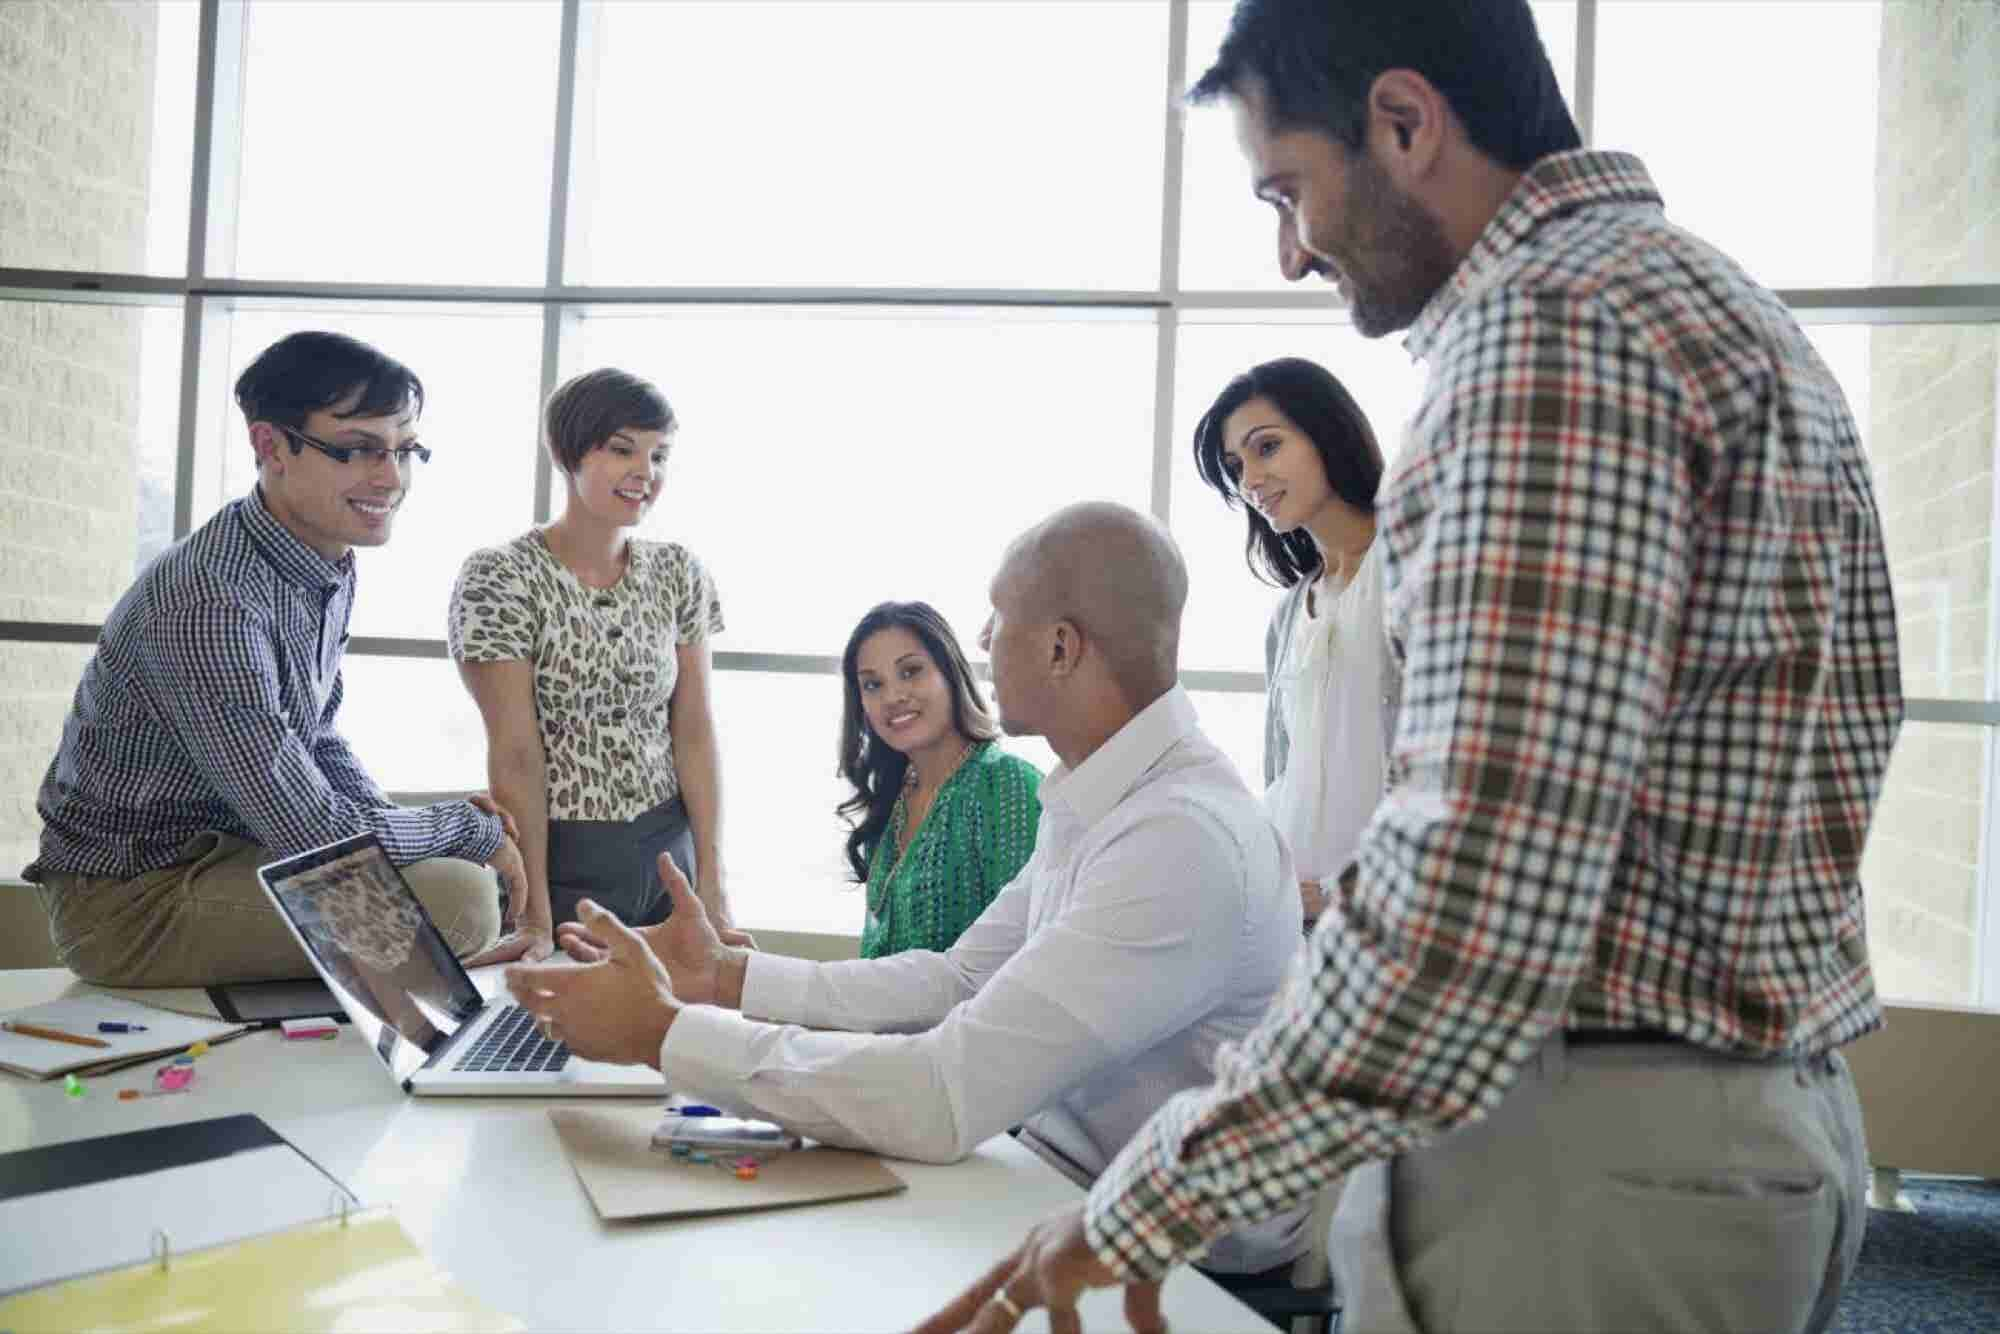 Managers Who Create Growth Opportunities See Greater Employee Engagement